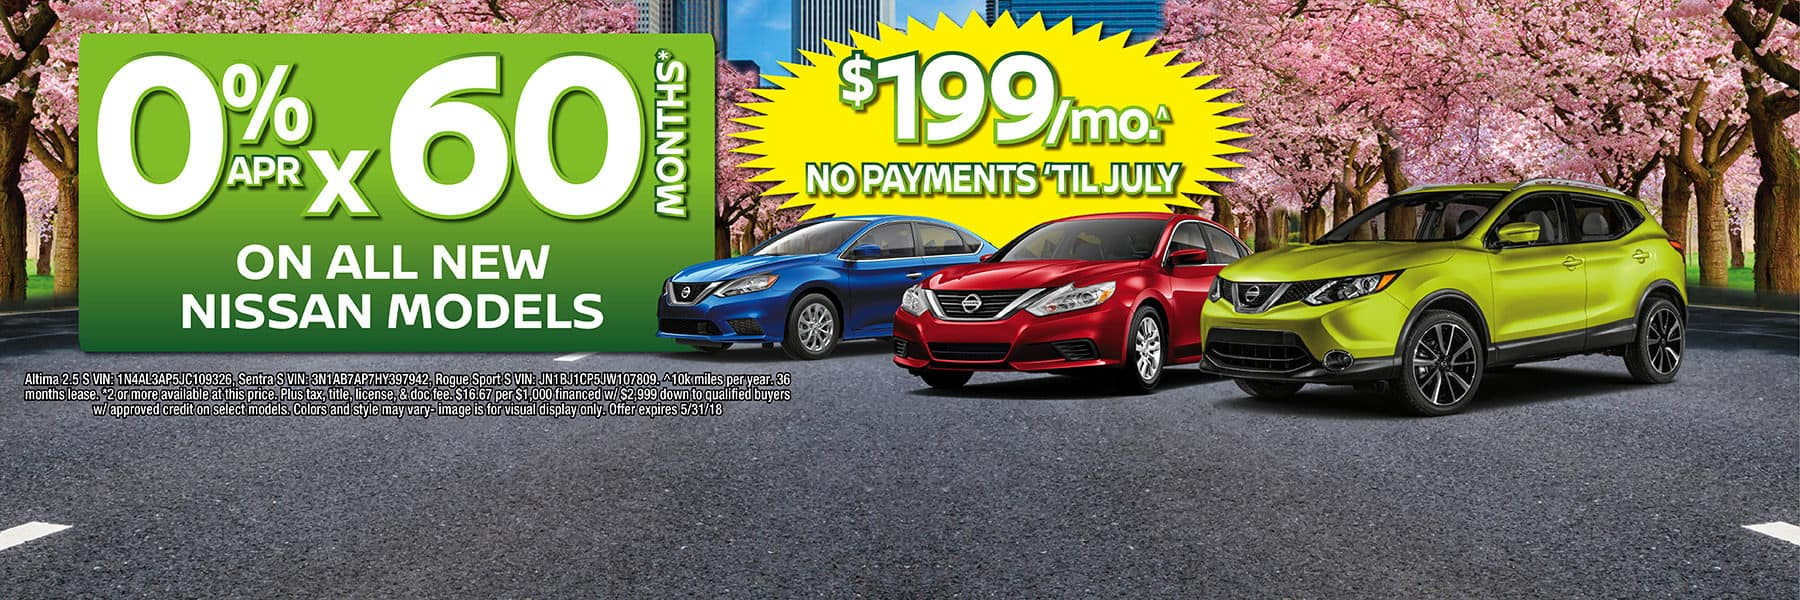 0% APR for 60 Months on All New Nissan Models at Berman Nissan of Chicago!